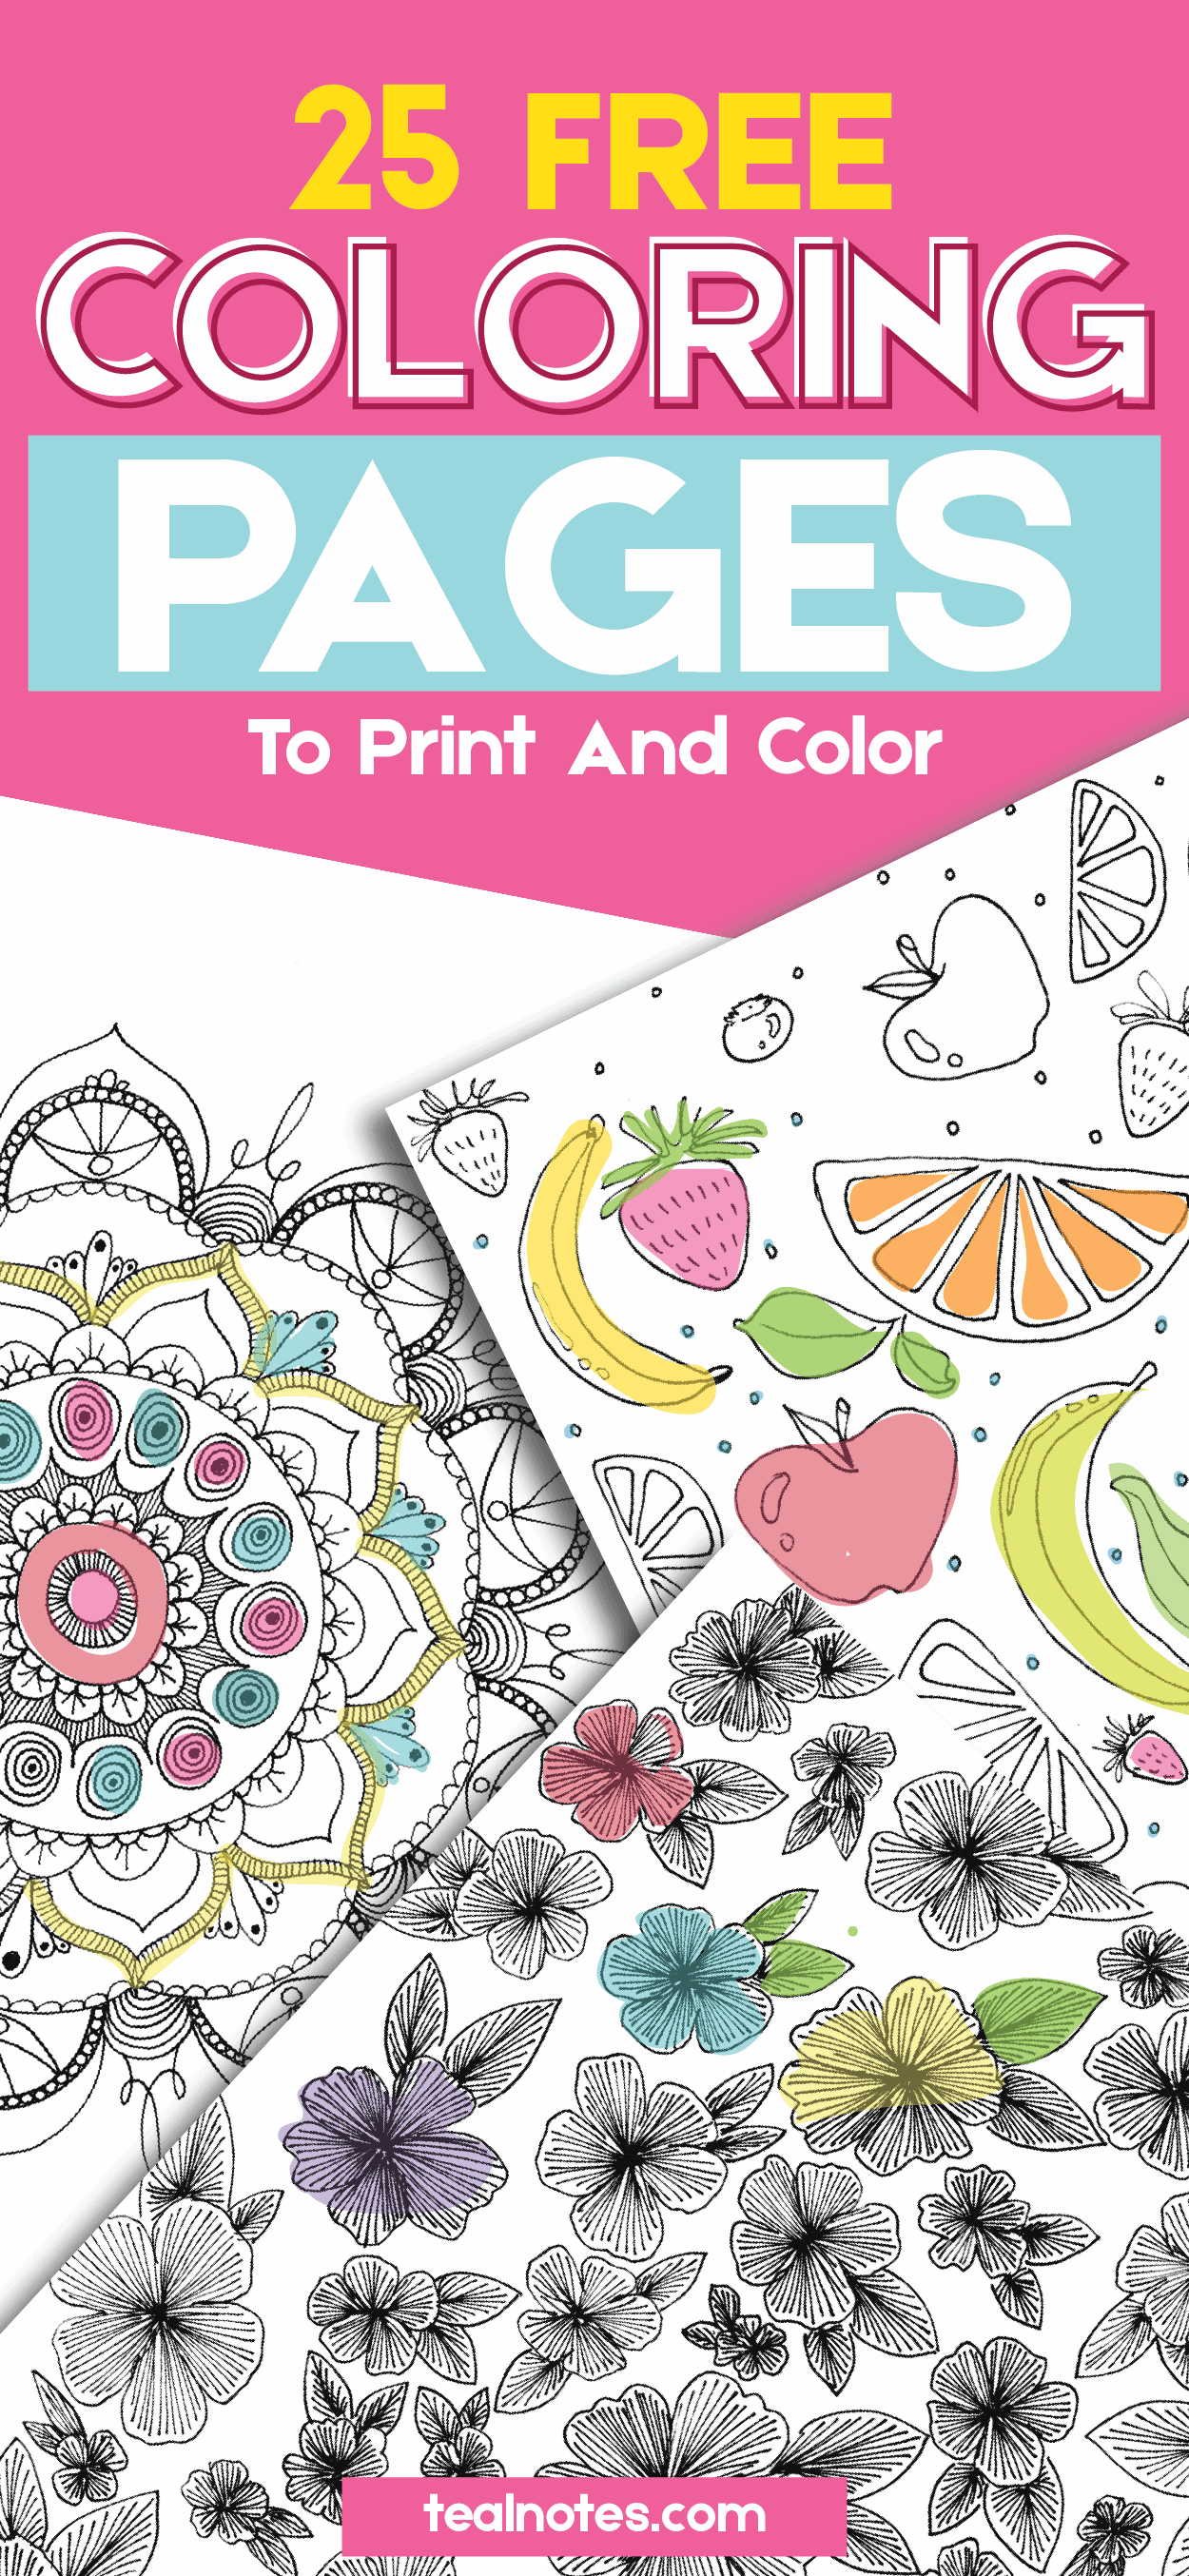 free adult coloring pages to print and color to de-stress and relax that are perfect for mindfulness and self care